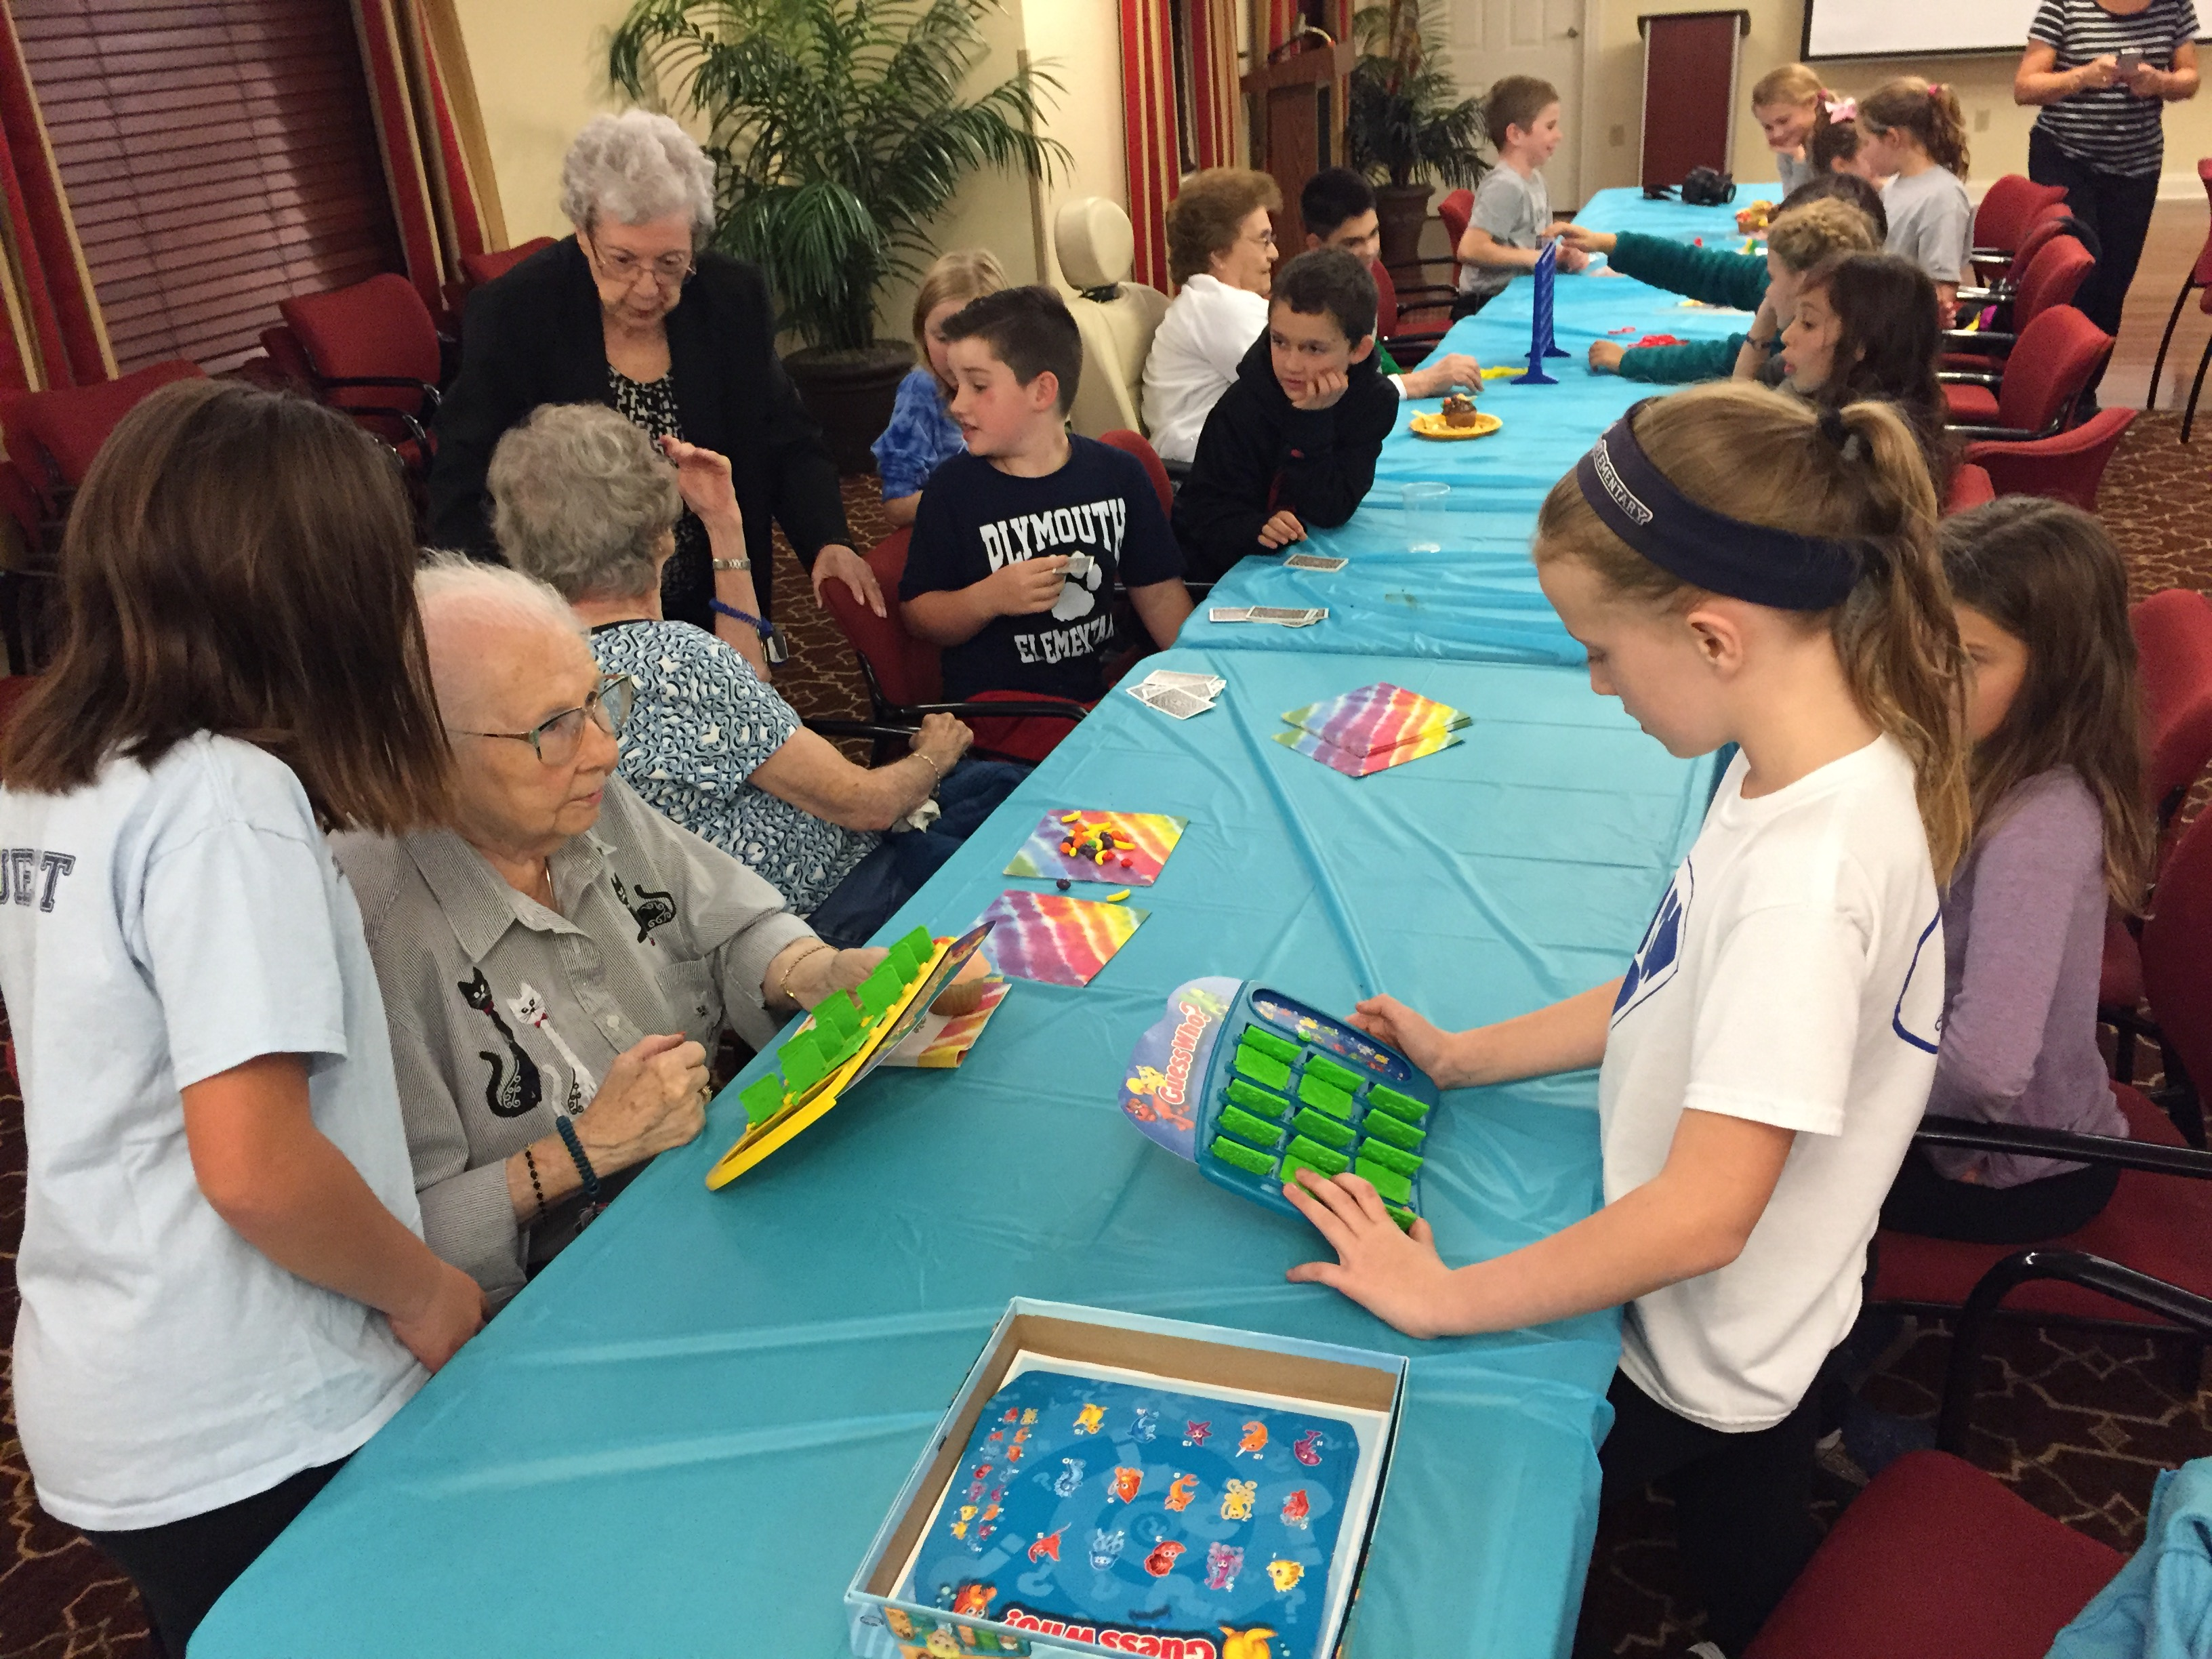 A long table with several small groups of seniors and children playing games.